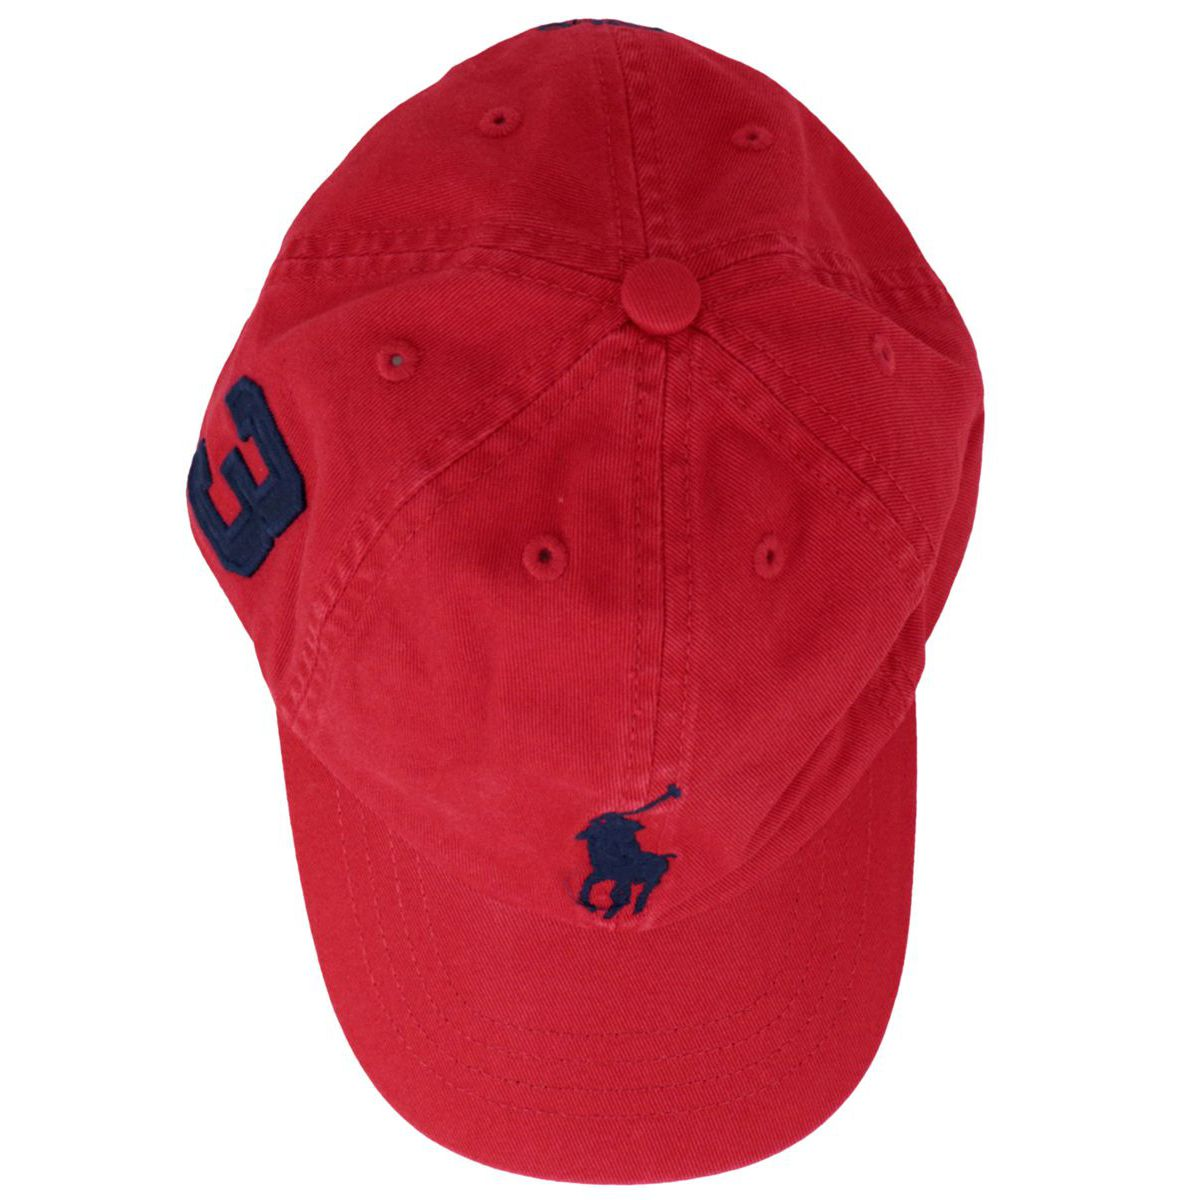 Cotton peaked hat with maxi logo embroidery Red Polo Ralph Lauren